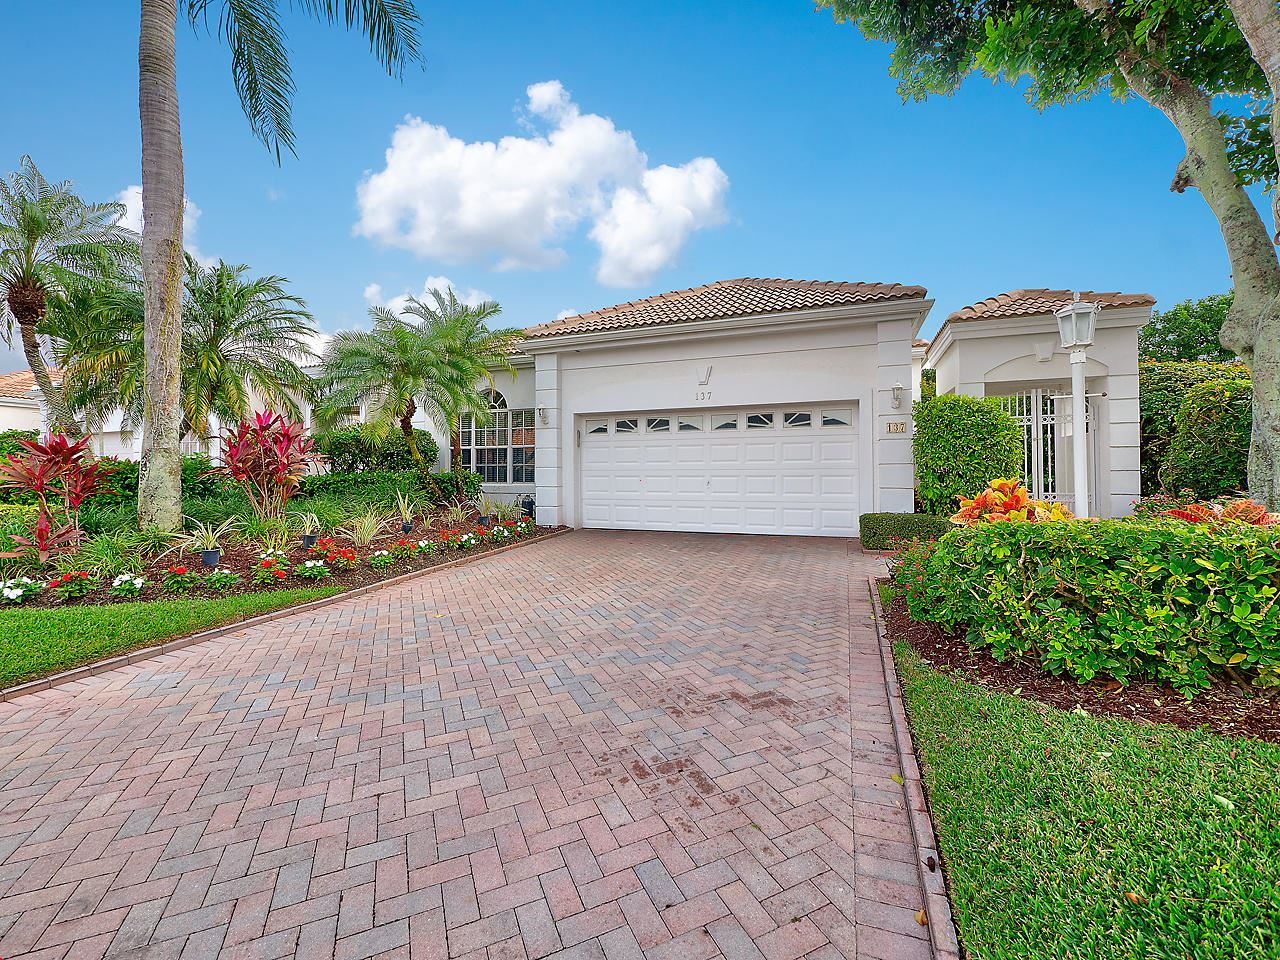 Photo of 137 Coral Cay Drive, Palm Beach Gardens, FL 33418 (MLS # RX-10678684)